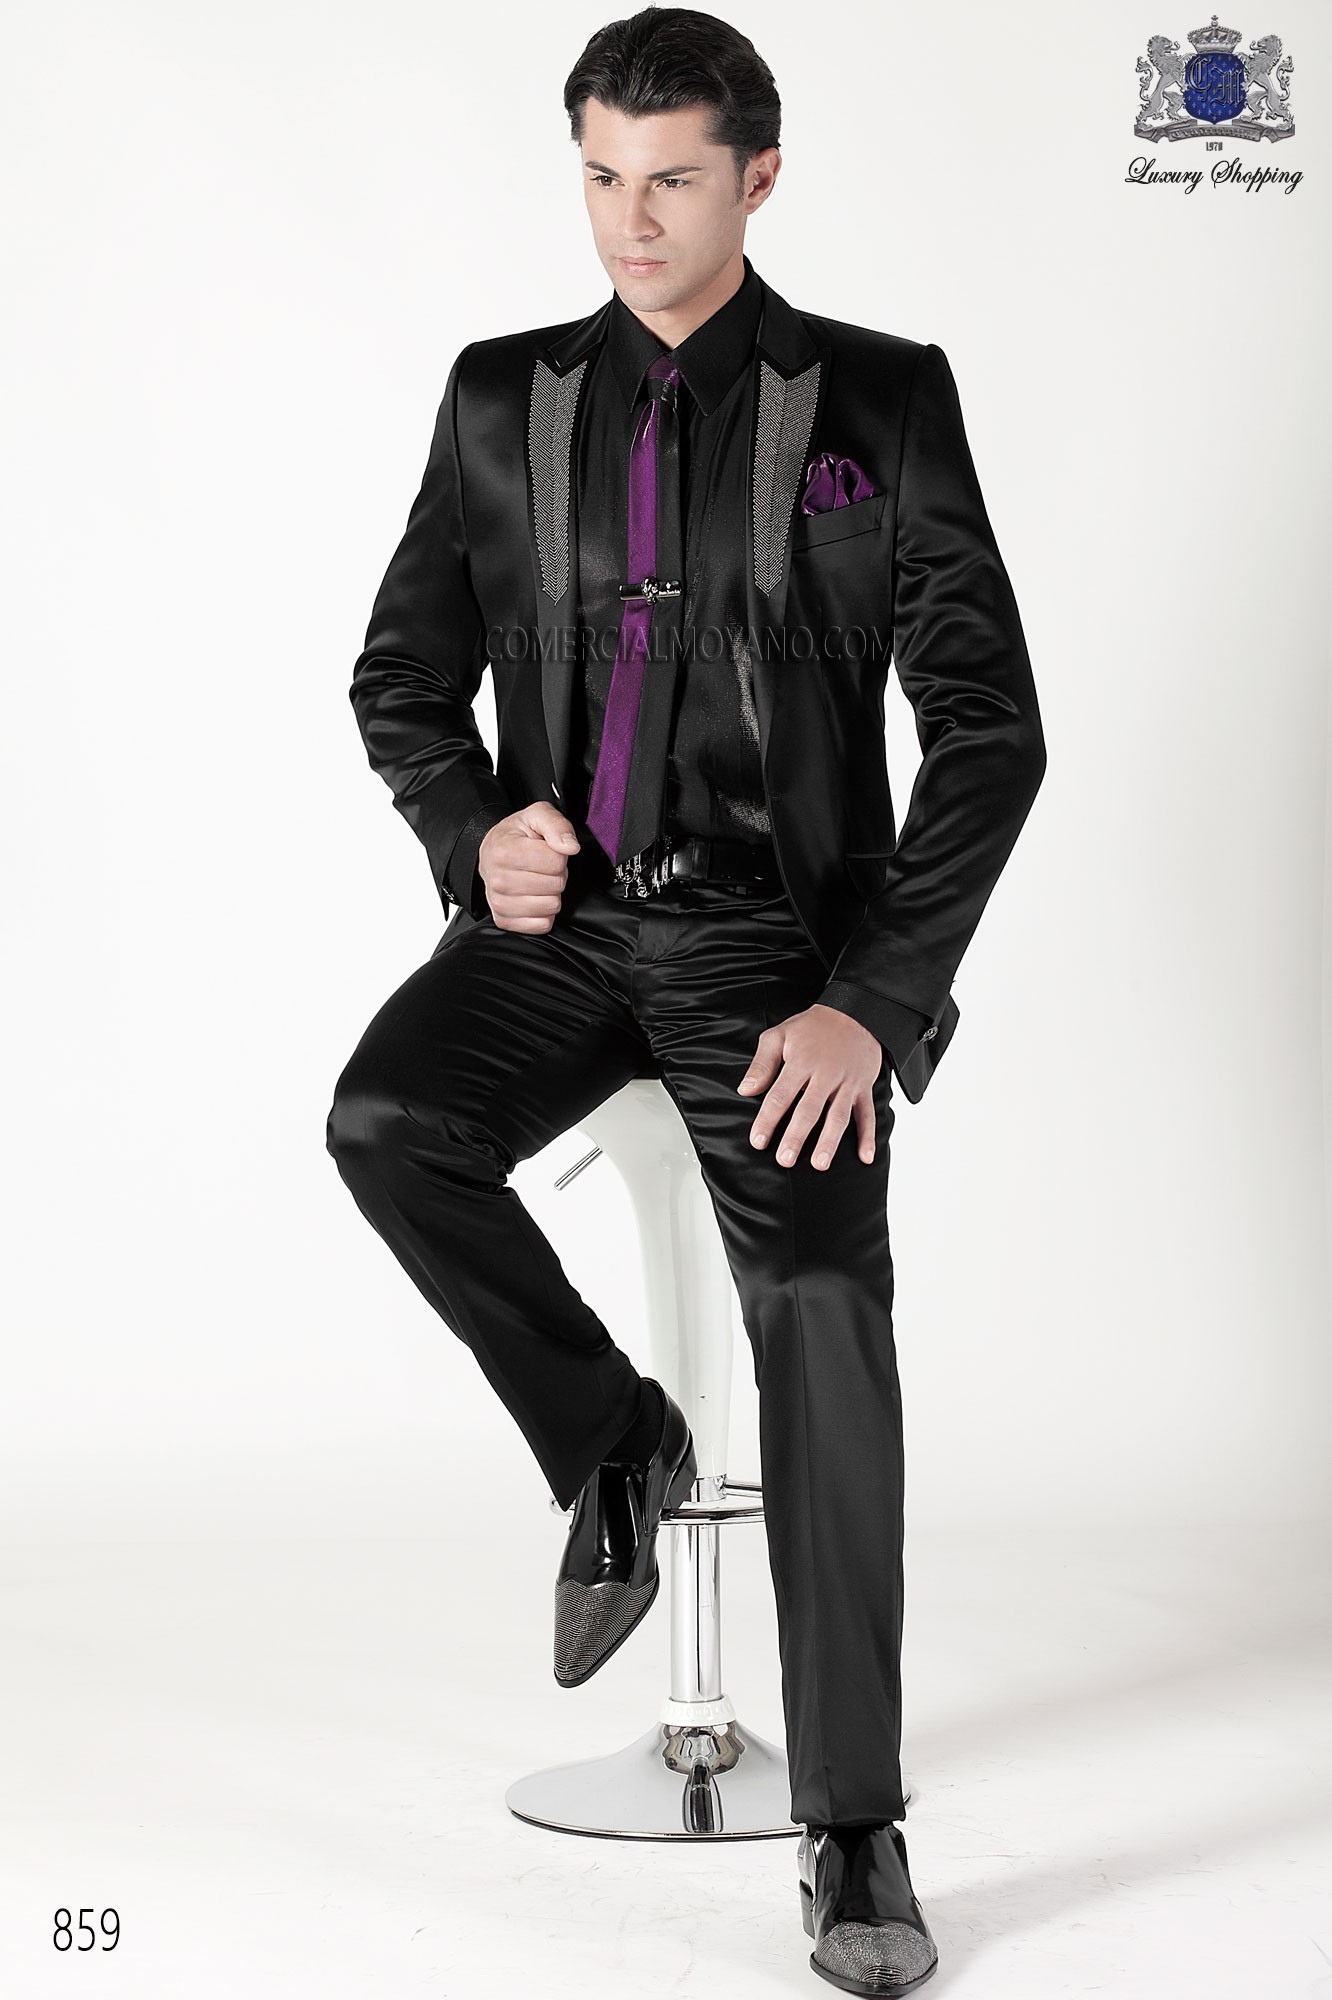 Emotion black men wedding suit model 859 Ottavio Nuccio Gala